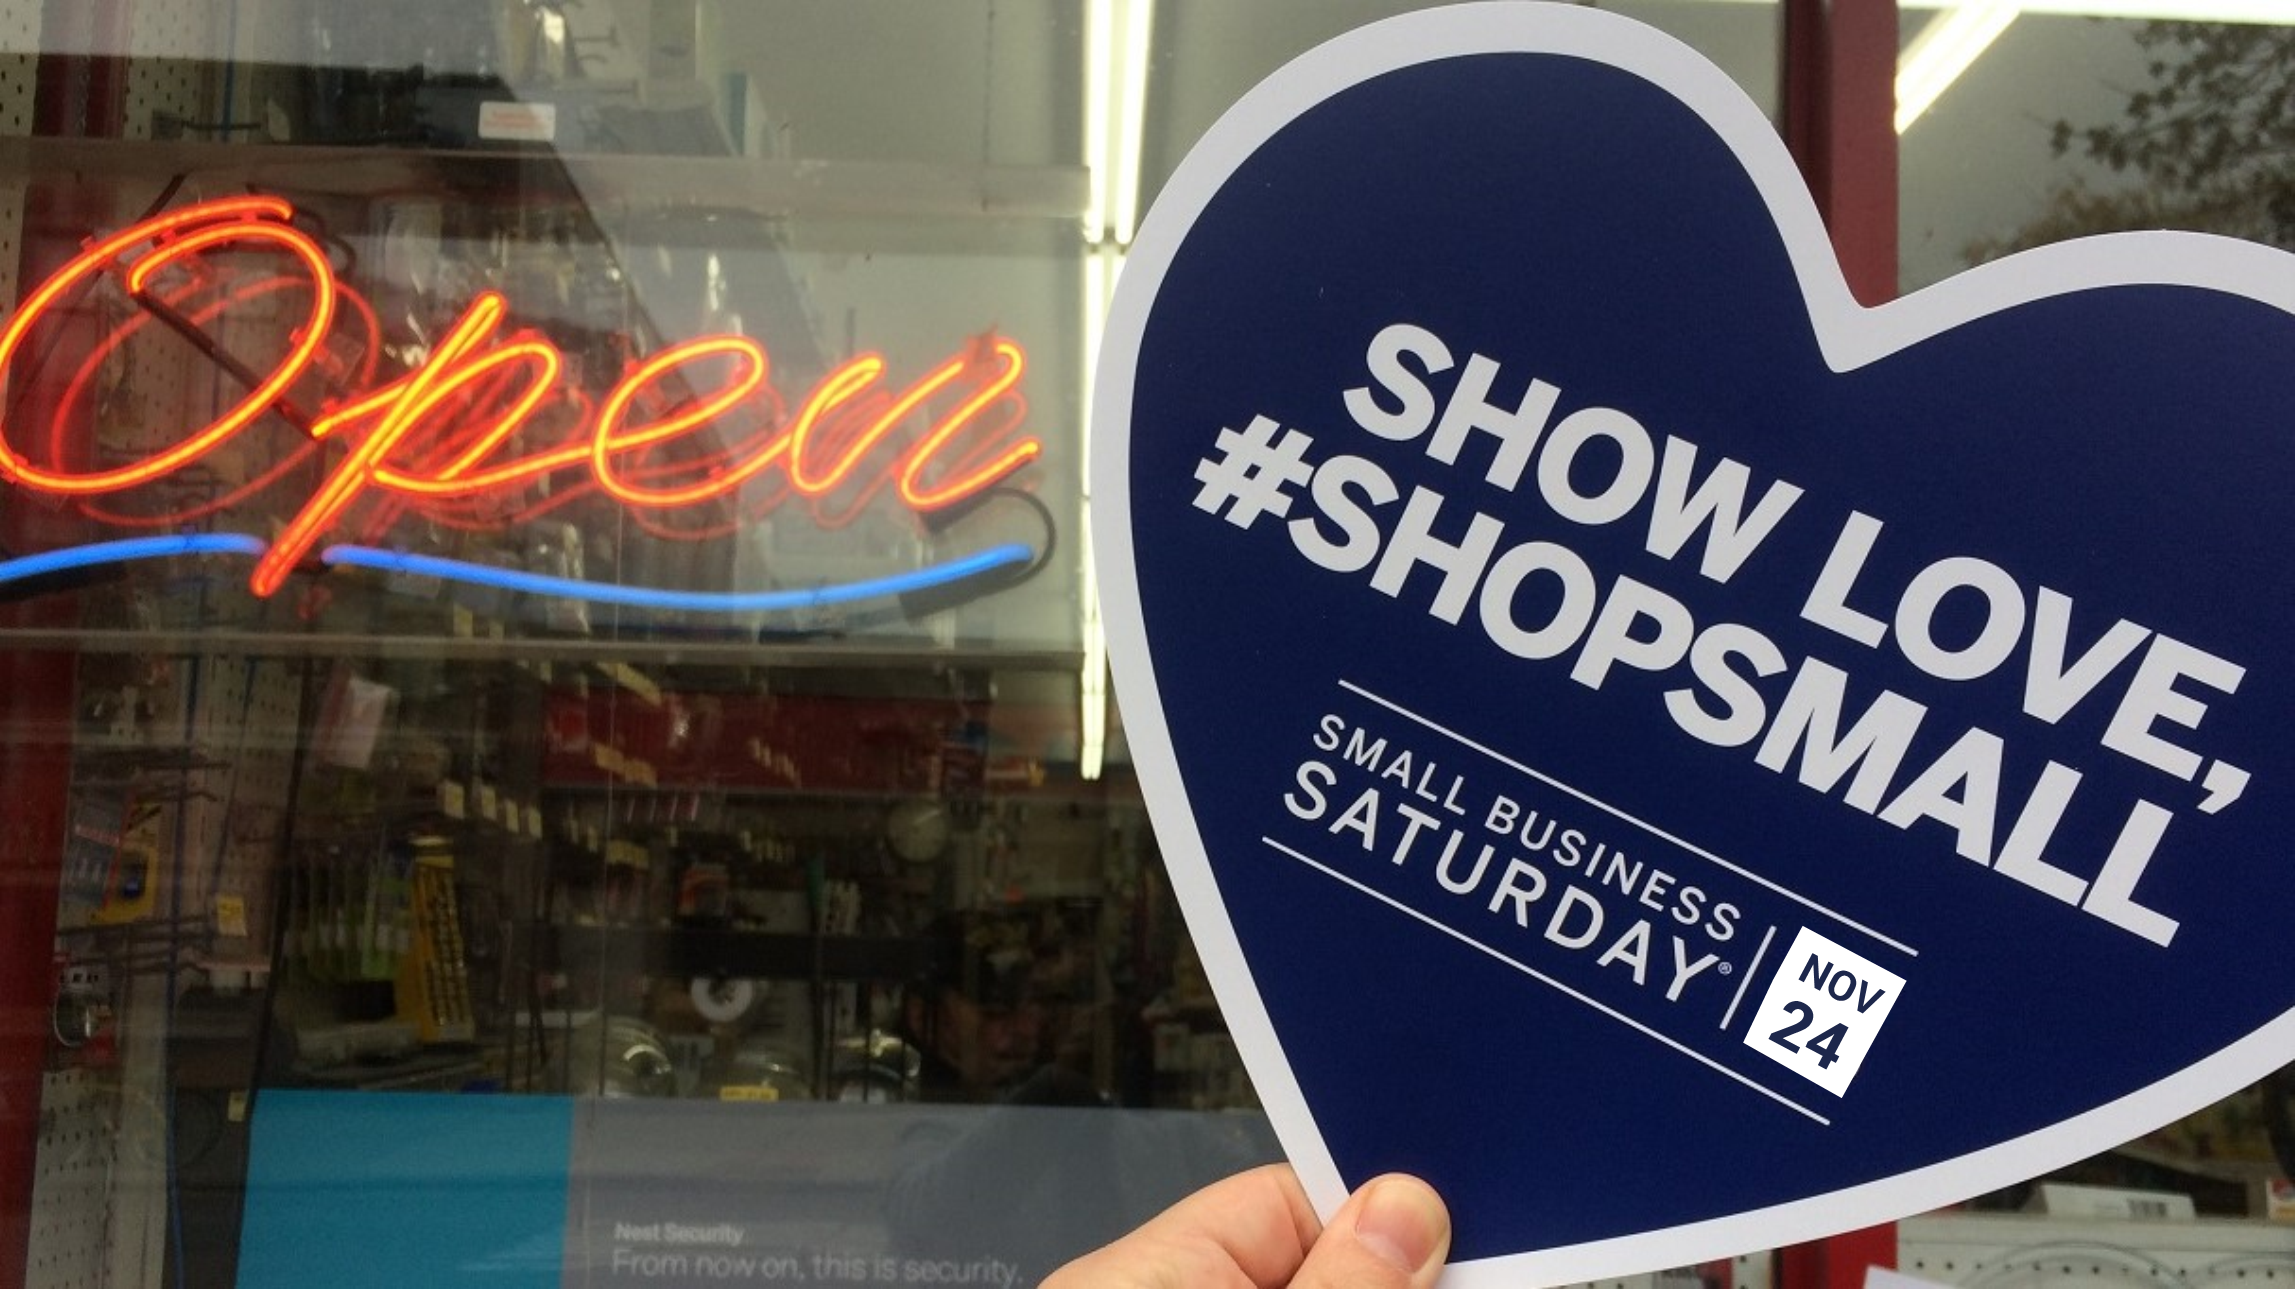 Small Business Saturday returns on November 24, and is a great opportunity to support neighborhood businesses